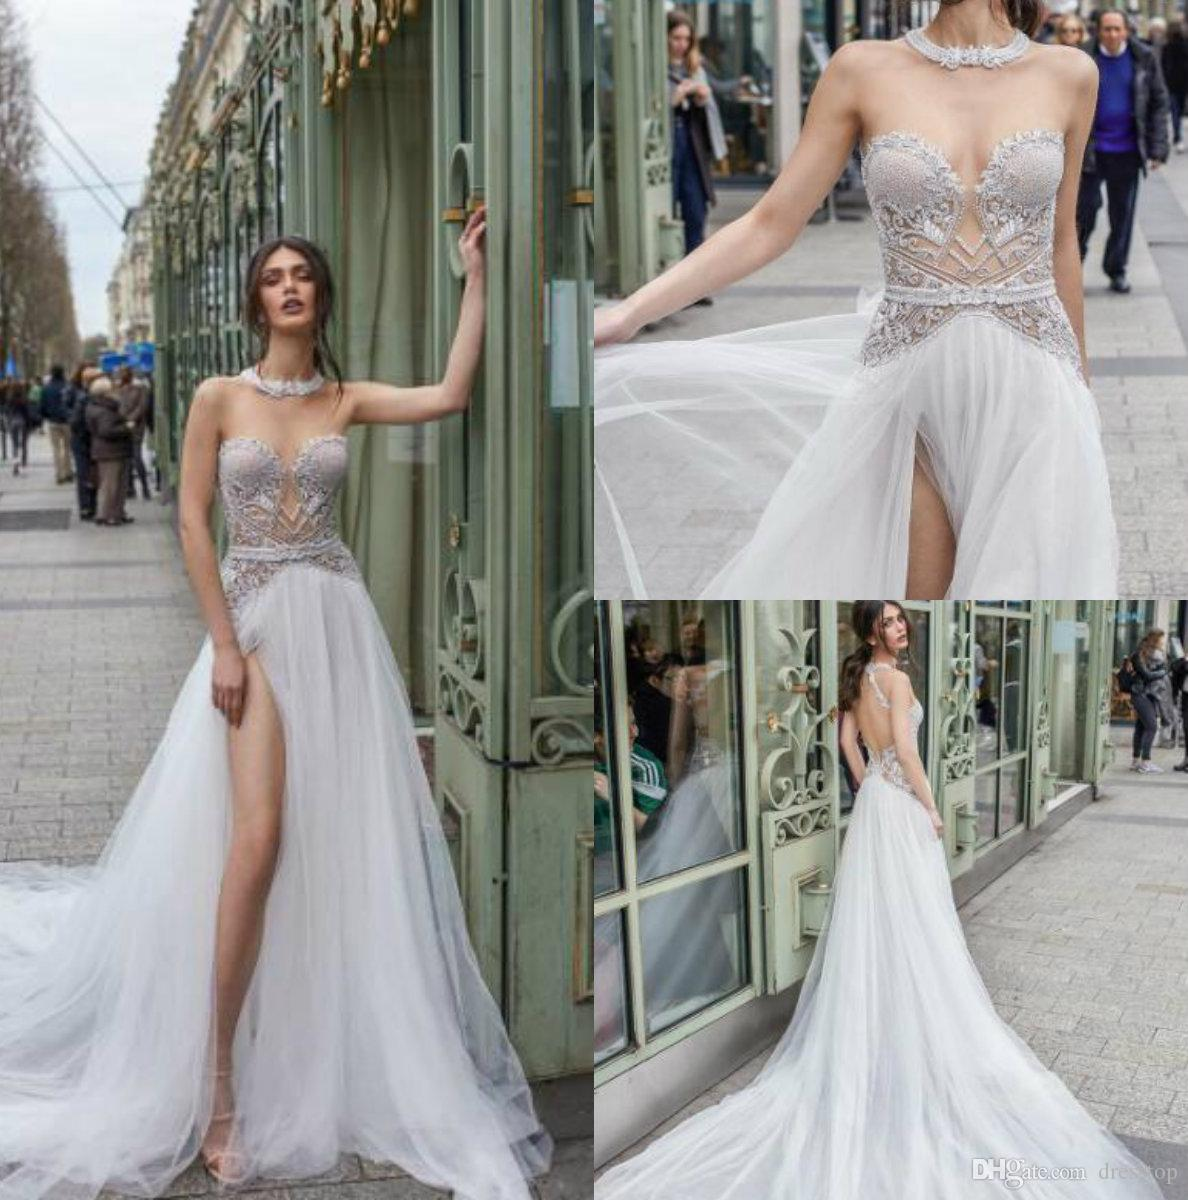 Cheap Wedding Gowns Toronto: Cheap Bridal Dresses Toronto